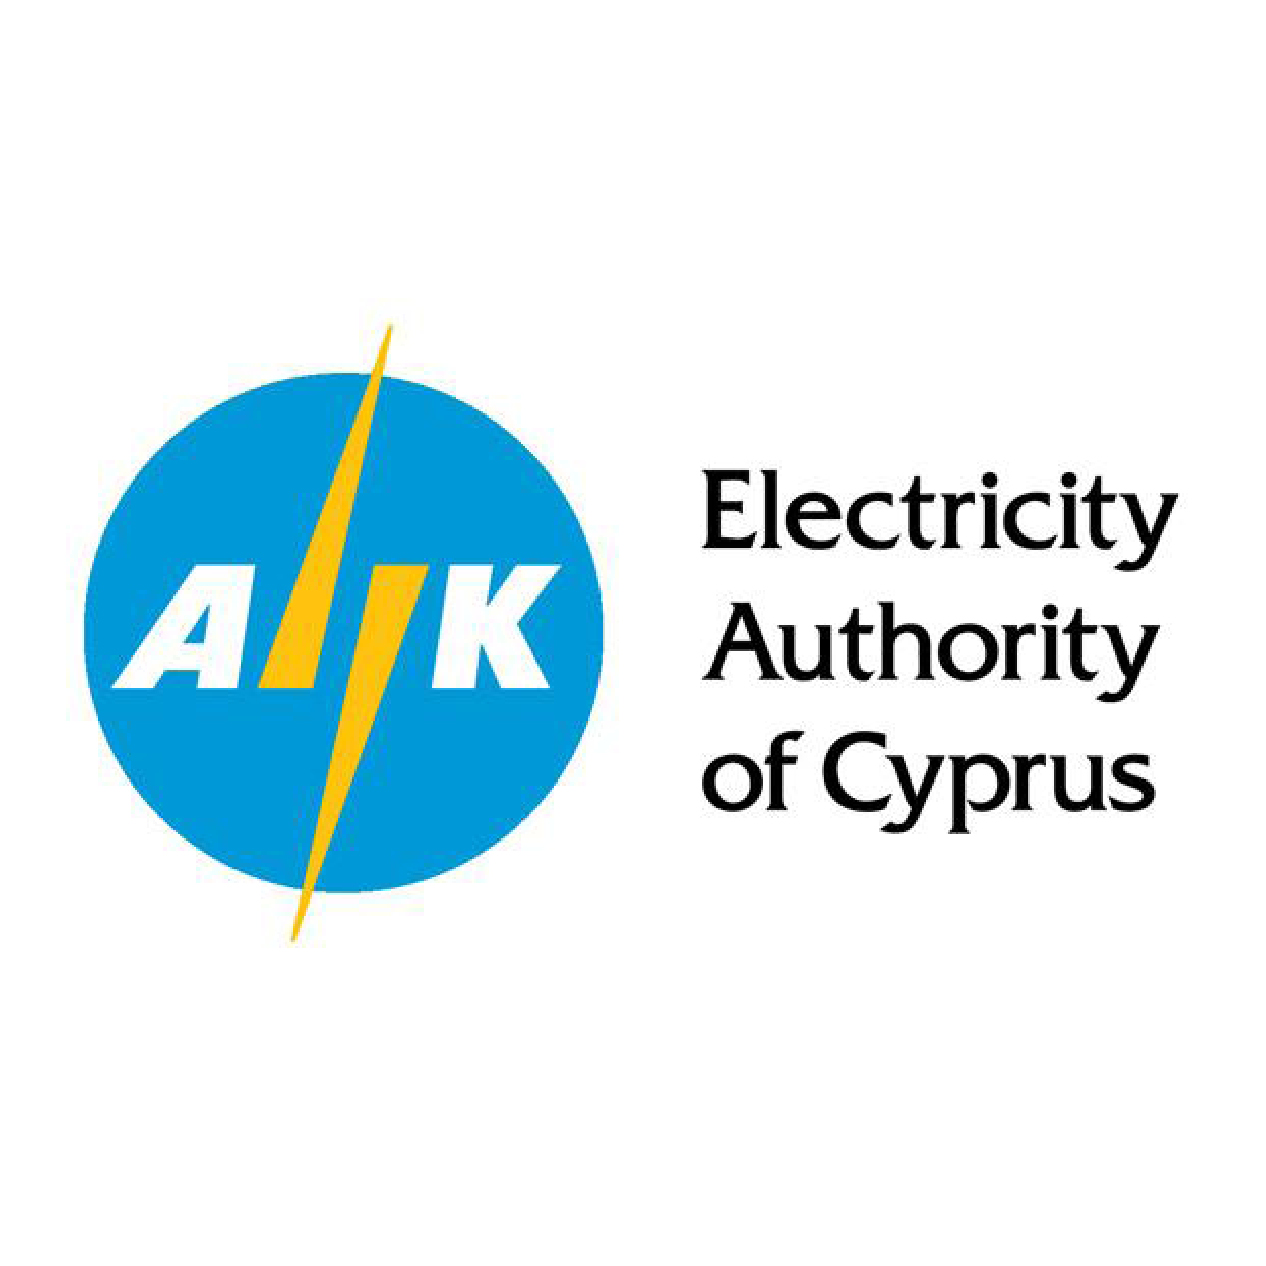 AHK Electricity Authority of Cyprus